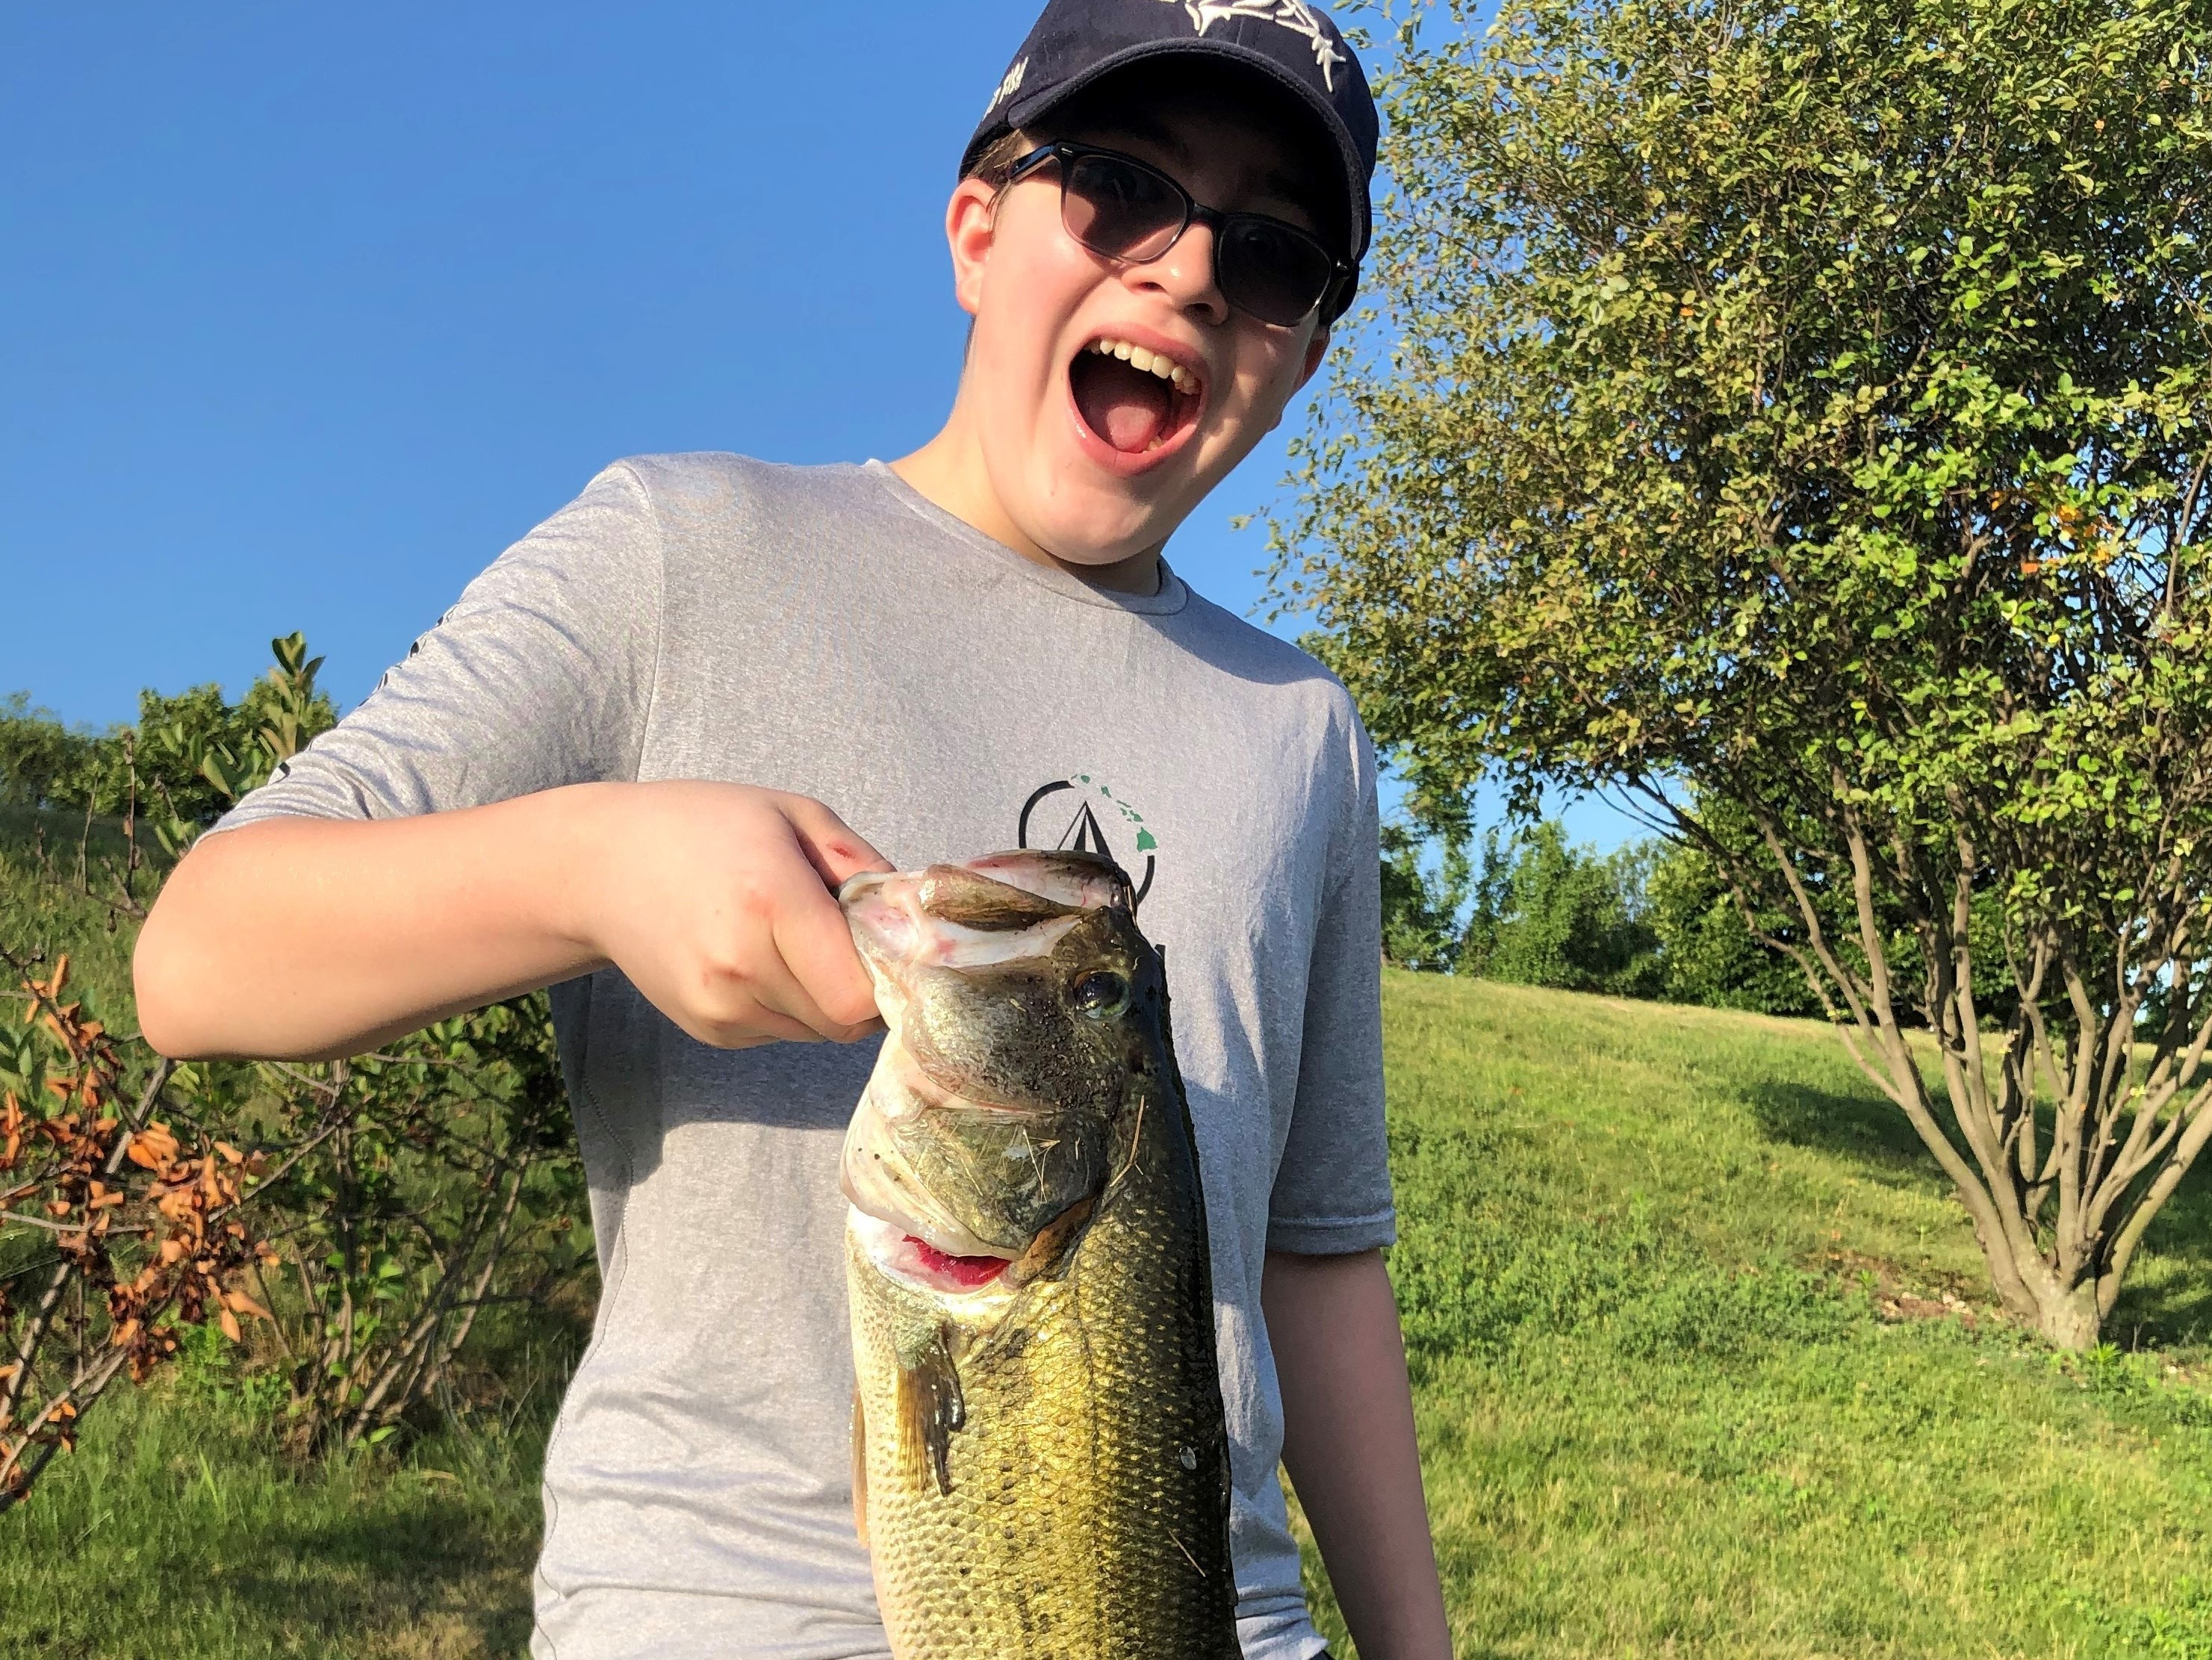 A.J. Koenigsknecht catches the joy of fishing while hoisting the largemouth bass he caught last weekend on a family excursion. Photo provided